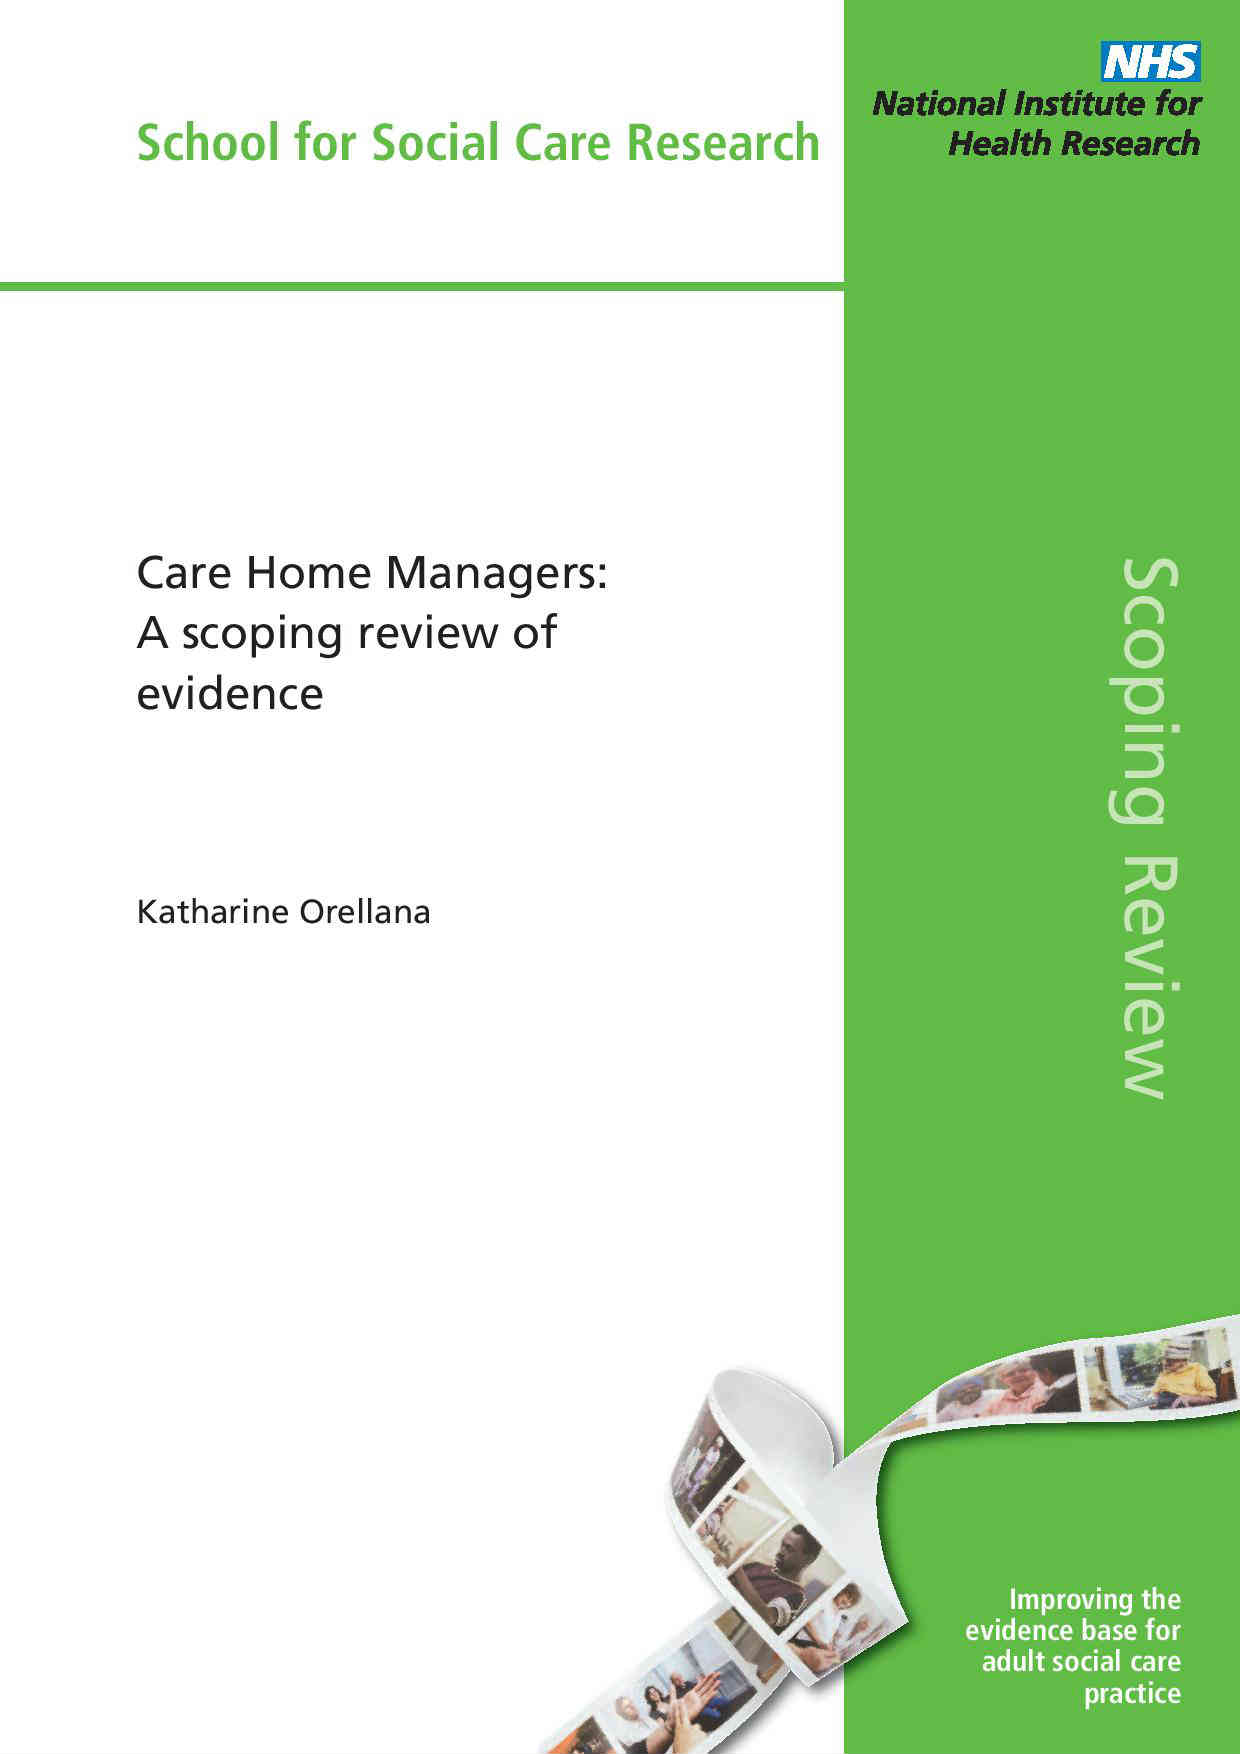 Care Home Managers: A scoping review of evidence